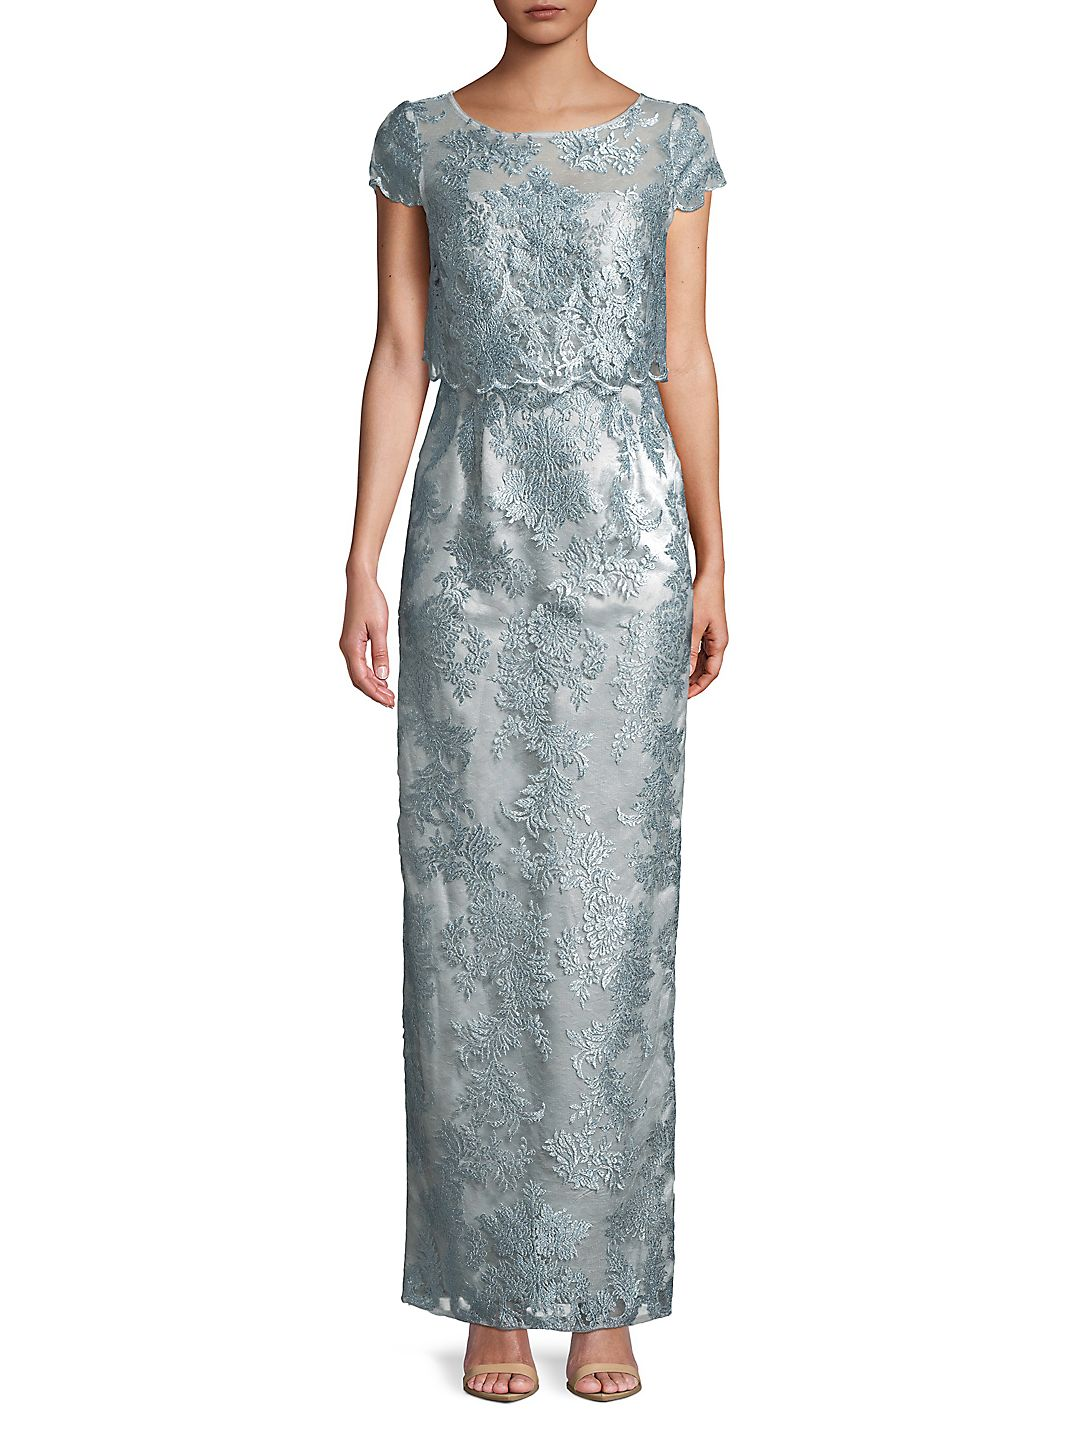 Adrianna Papell Womens Lace Popover Evening Dress